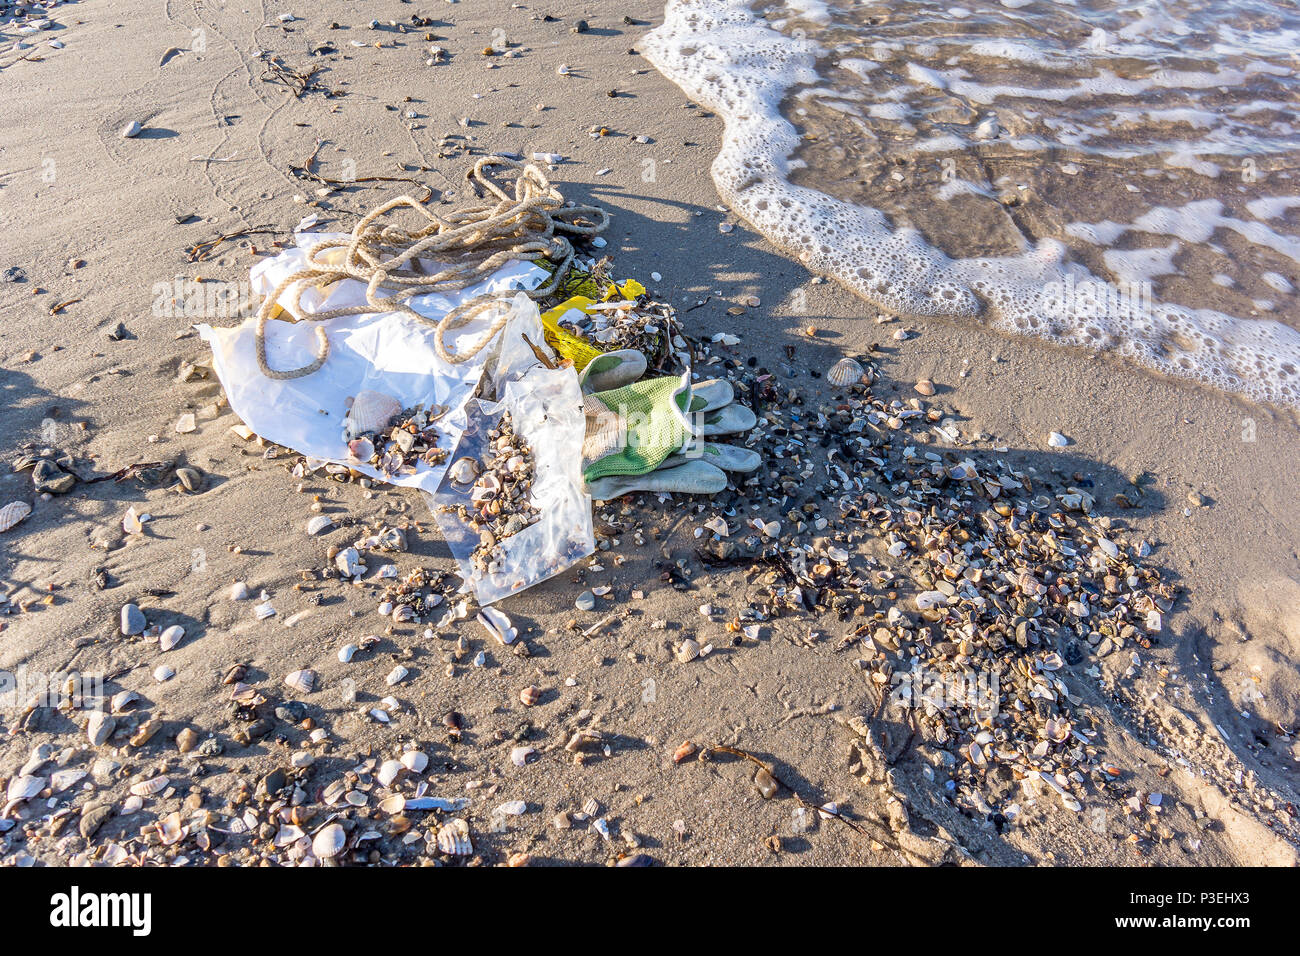 A plastic bottle and other rubbish on the sand, washed by the waves, a closeup of a polluted beach, Vejle, Denmark, June 6, 2018 - Stock Image